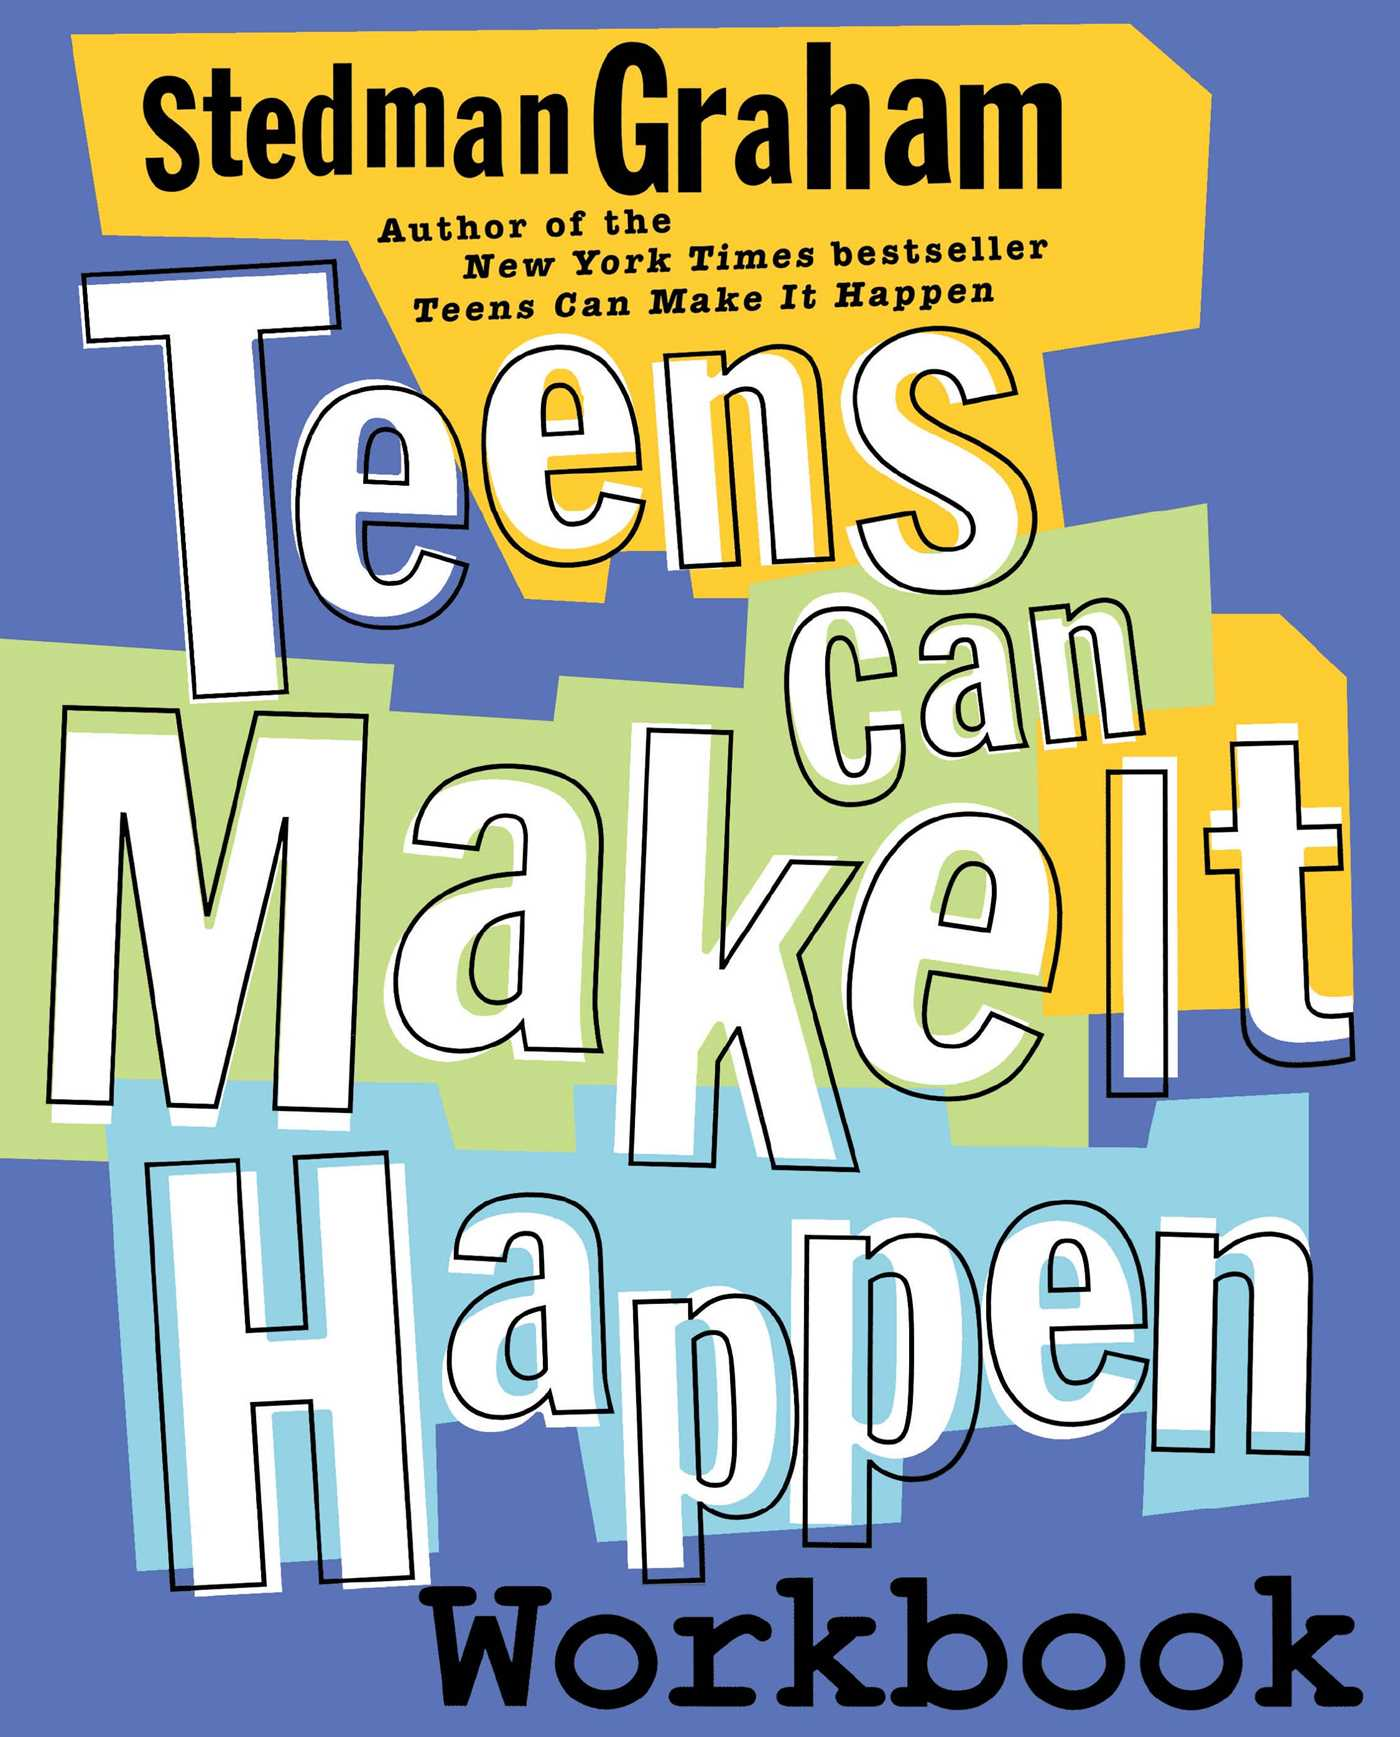 Teens-can-make-it-happen-workbook-9780743225588_hr